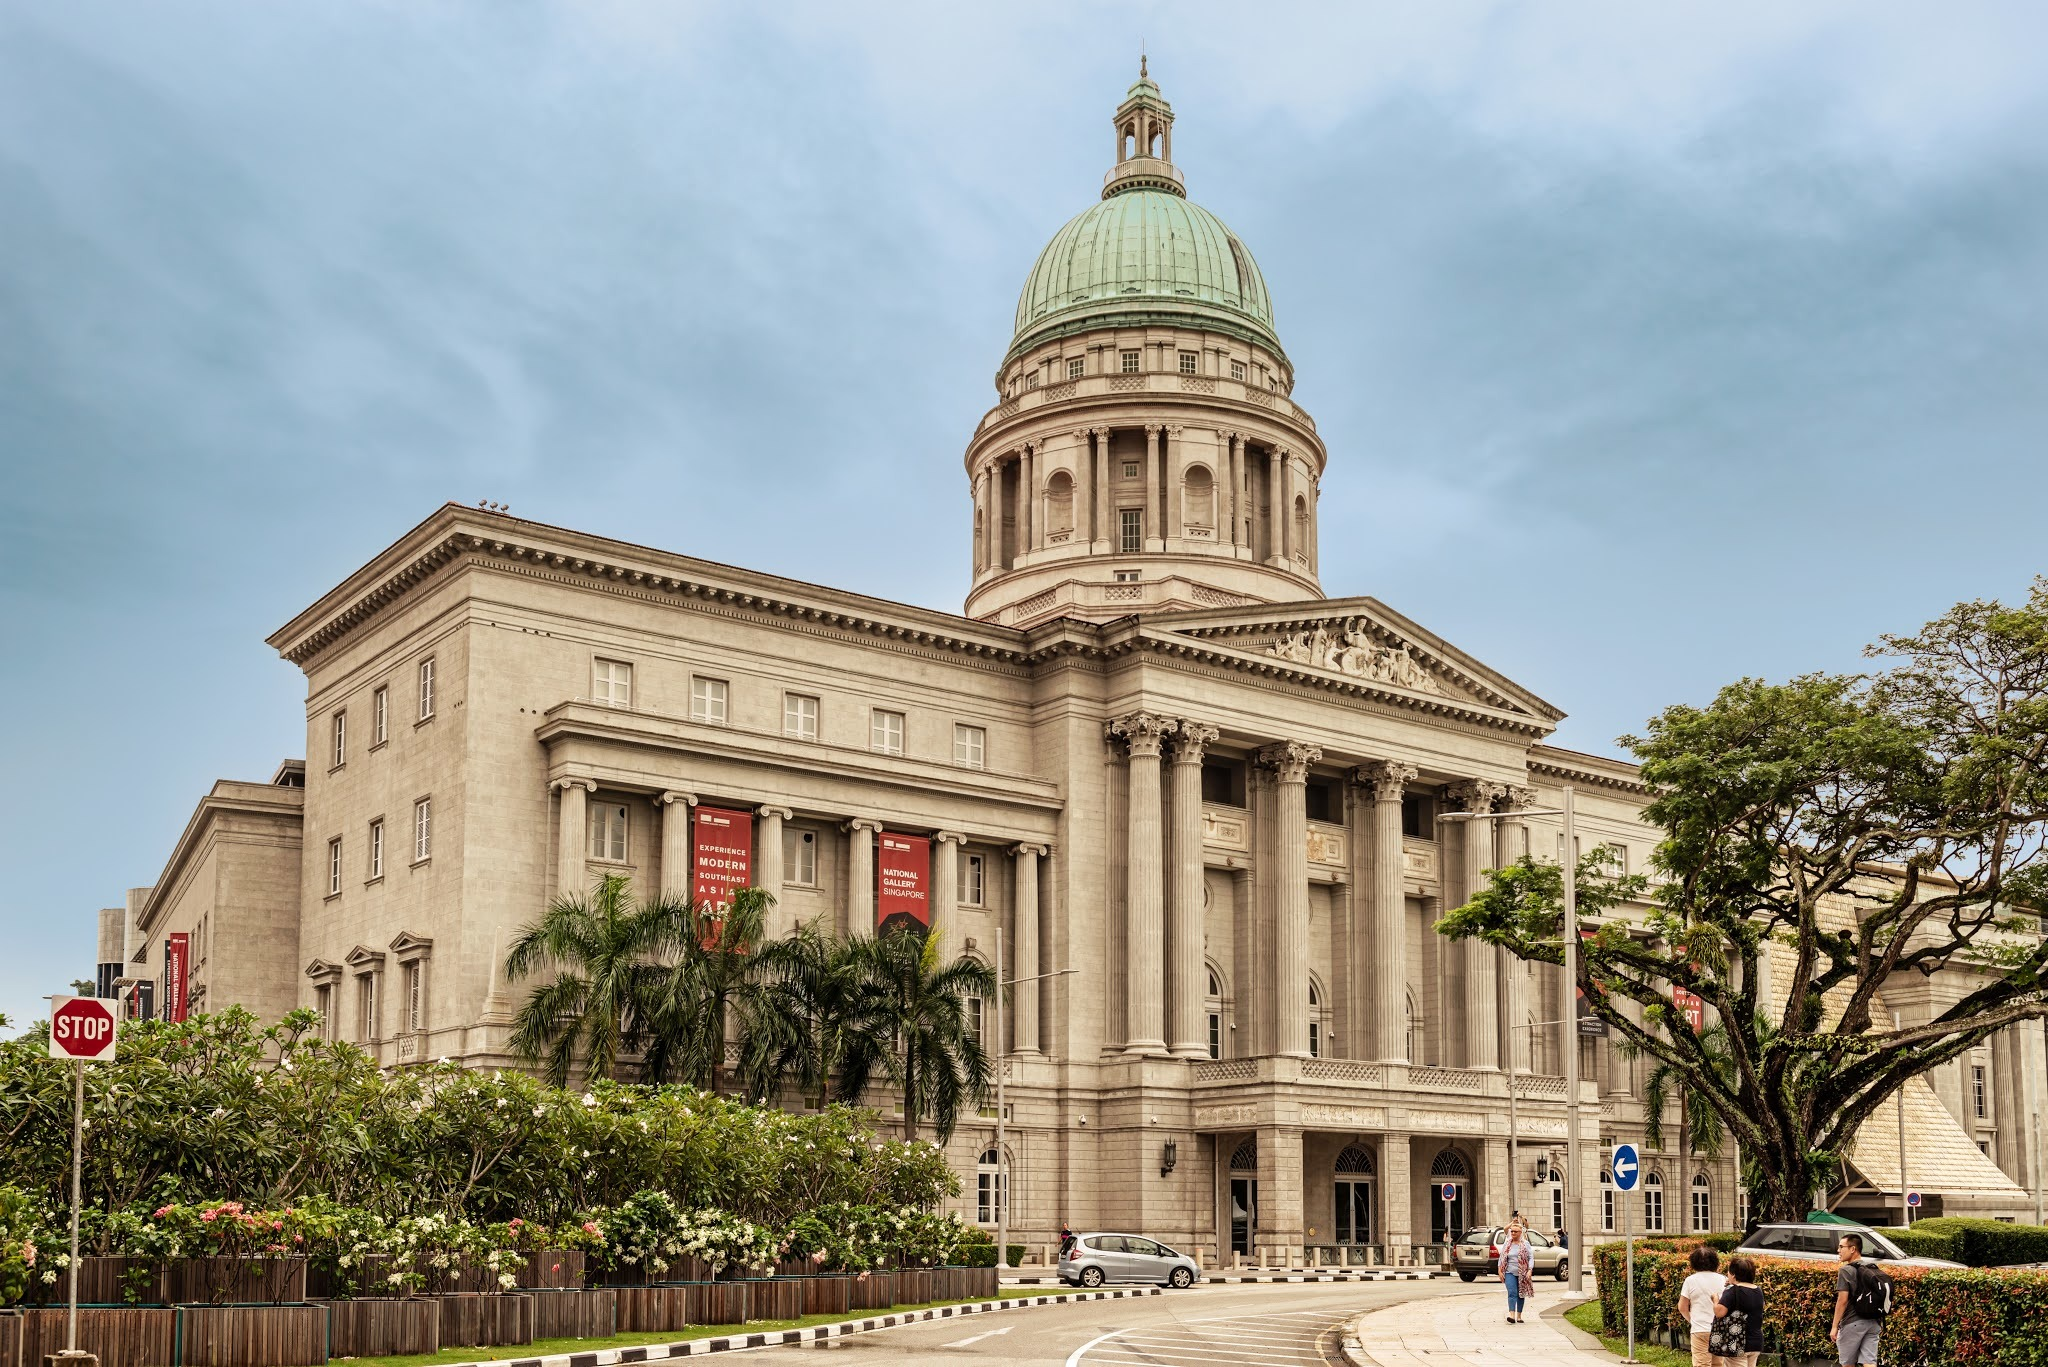 National Gallery Singapore offers free one year Gallery Insider membership